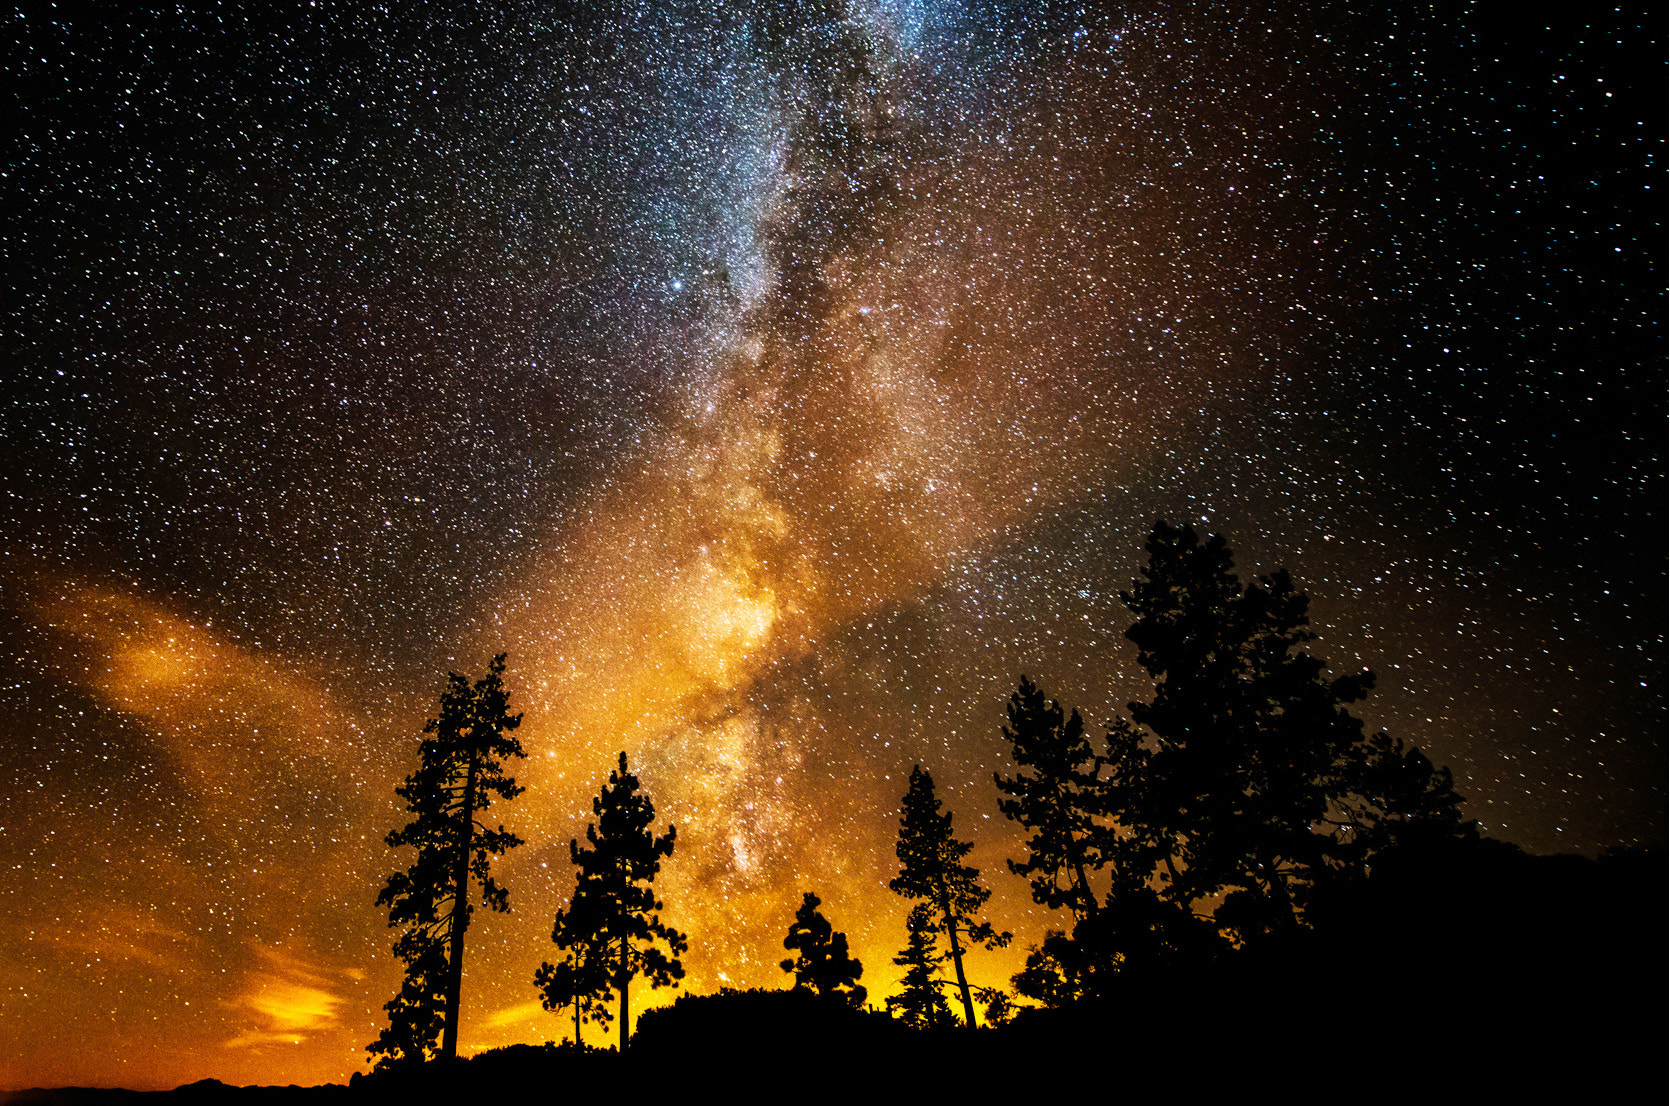 Photograph Fire in the Night Sky by Bill Currier on 500px